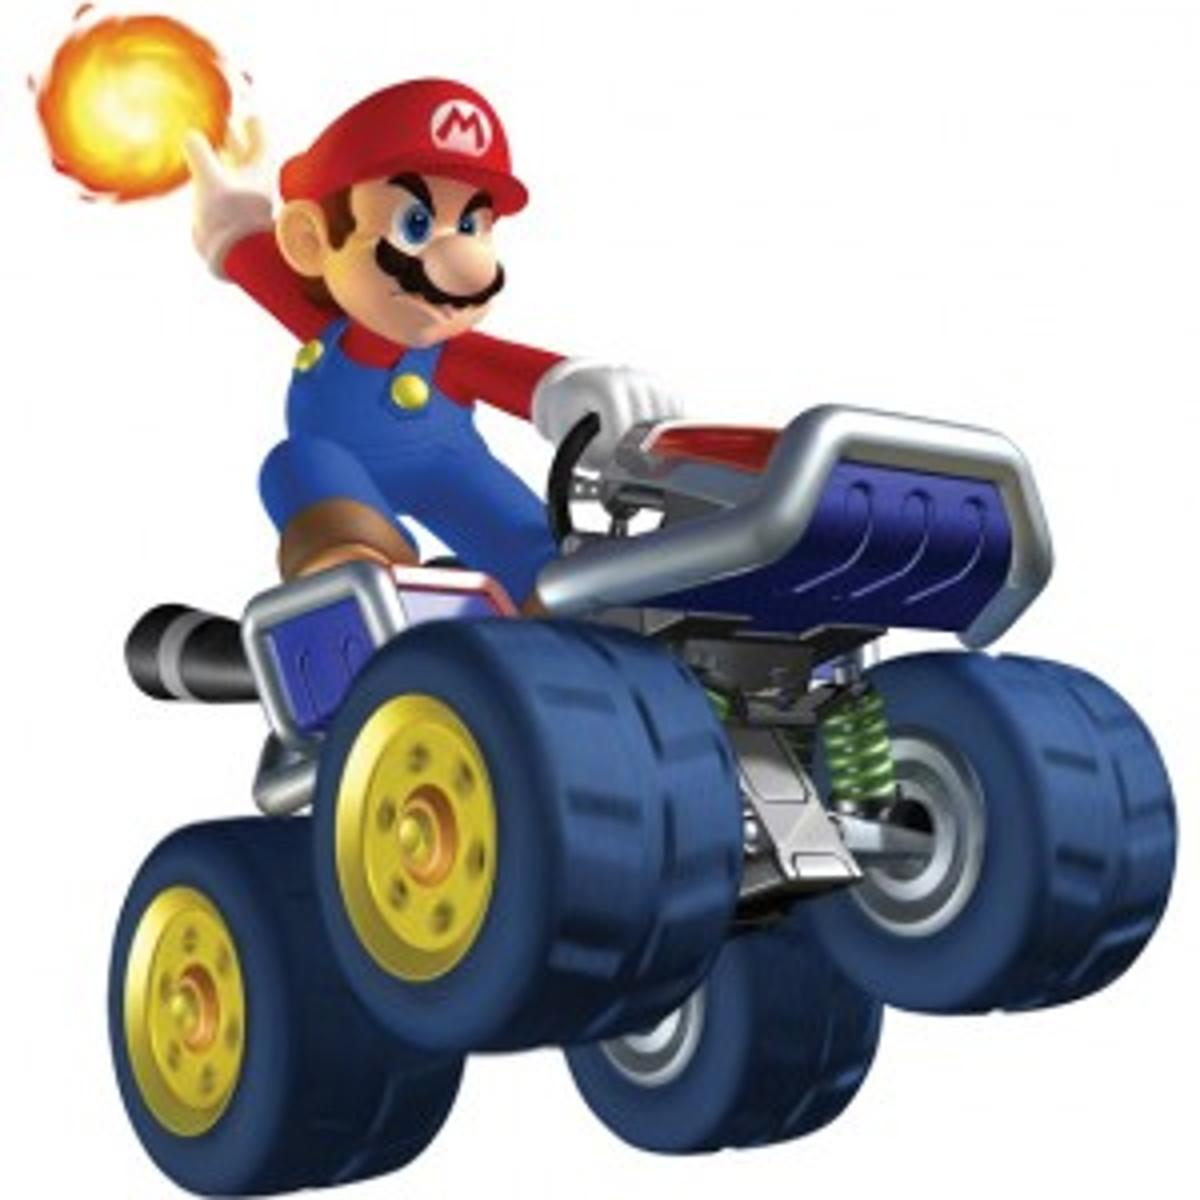 Mario Kart 7' a disjointed disappointment | Local